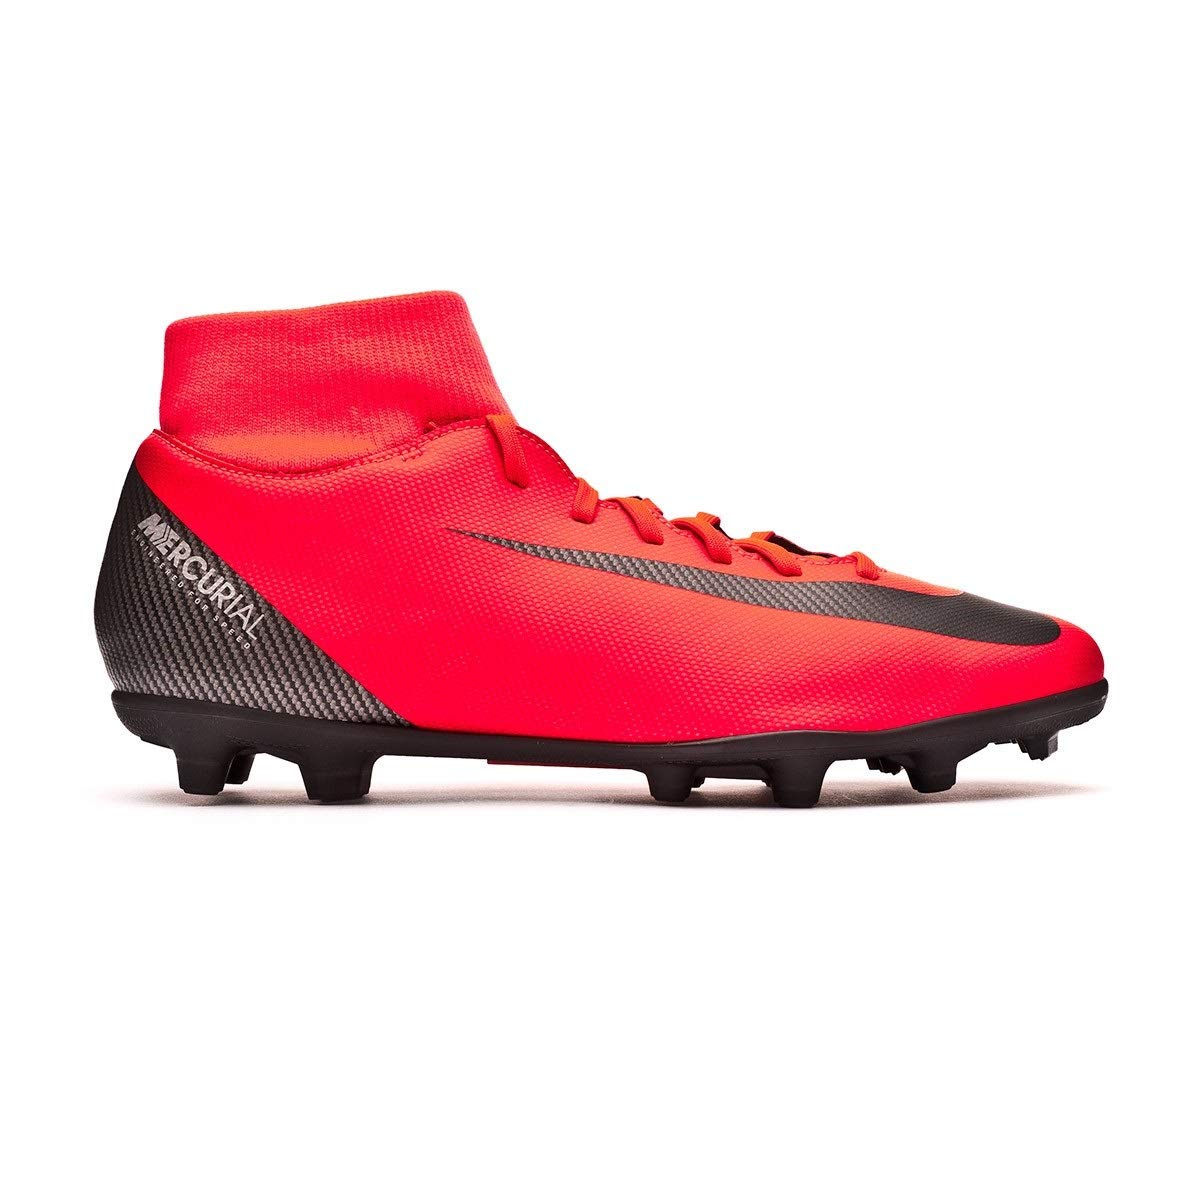 low priced b4665 b7675 Nike Mercurial Superfly 6 Club CR7 MG Soccer Cleat (Bright Crimson) (Men's  11/Women's 12.5)